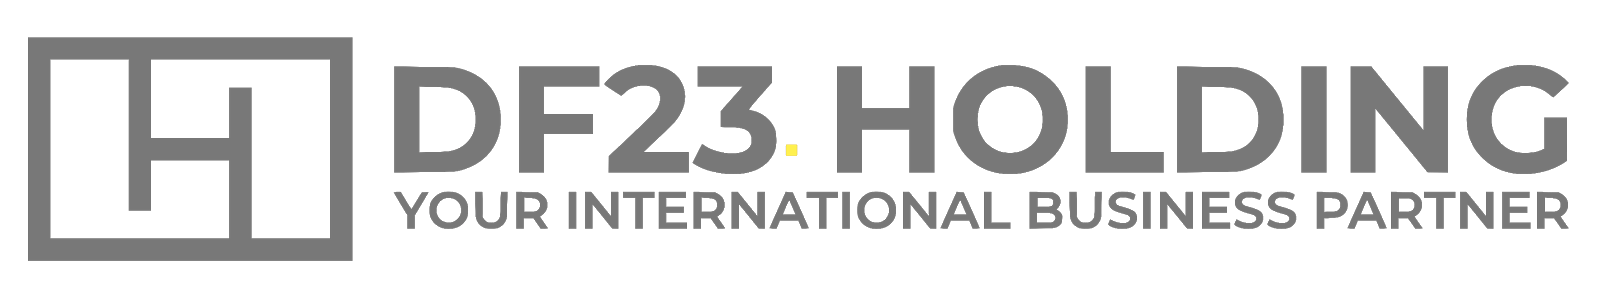 DF23 Holding Sh.p.K. - Your International Business Partner!